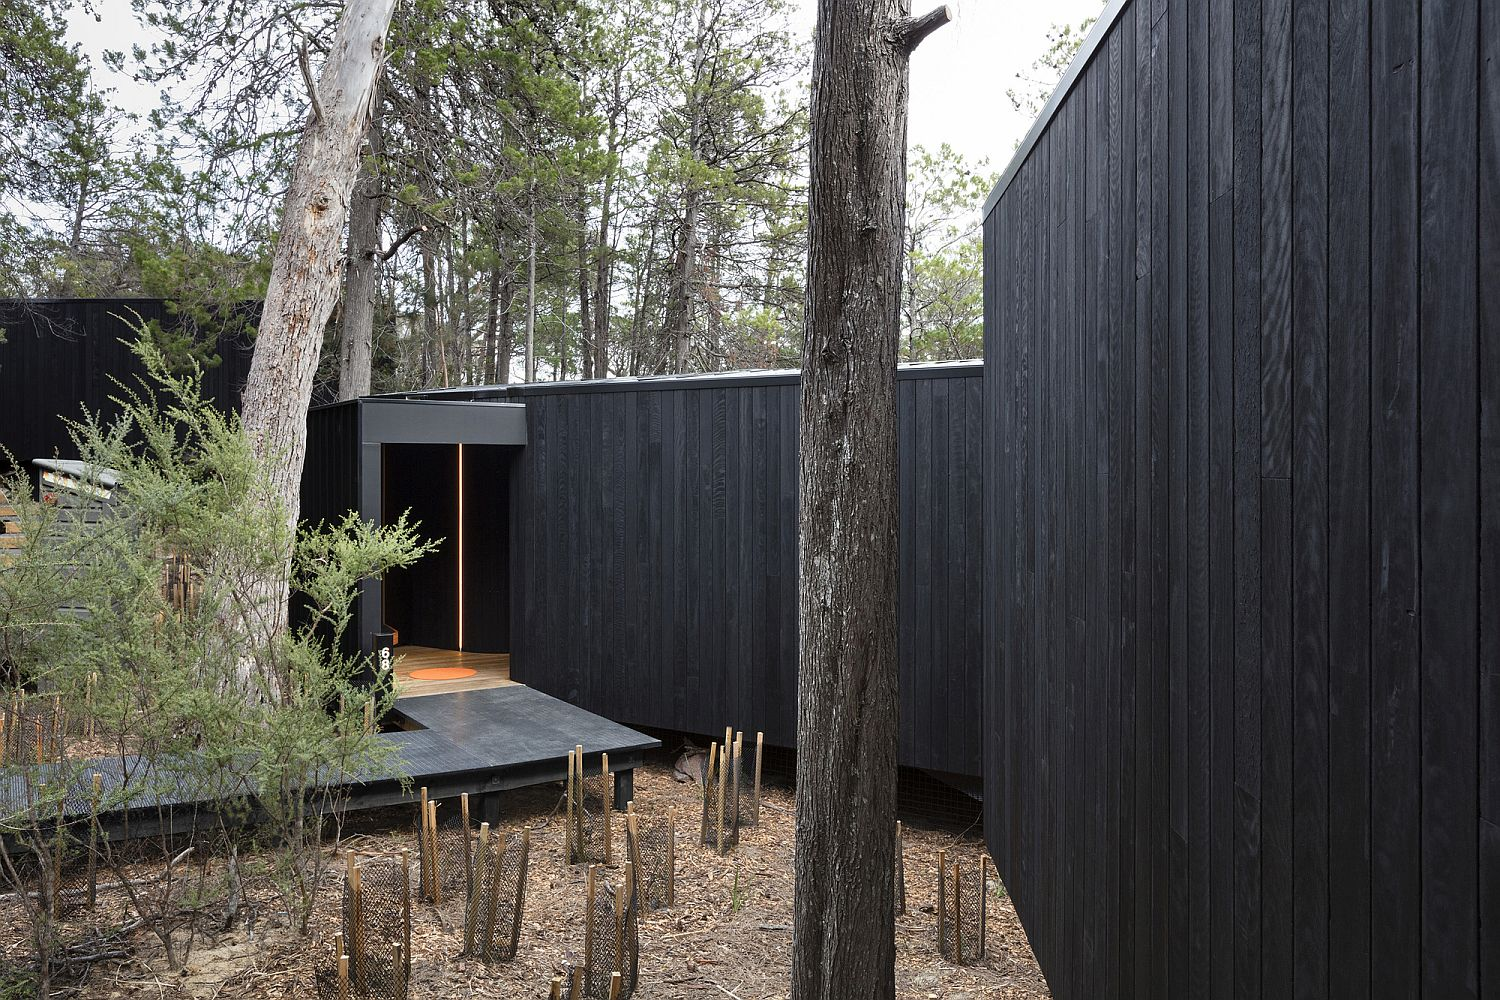 Tasmanian oak, blackwood and other locally sourced woods shape the lovely pavilions